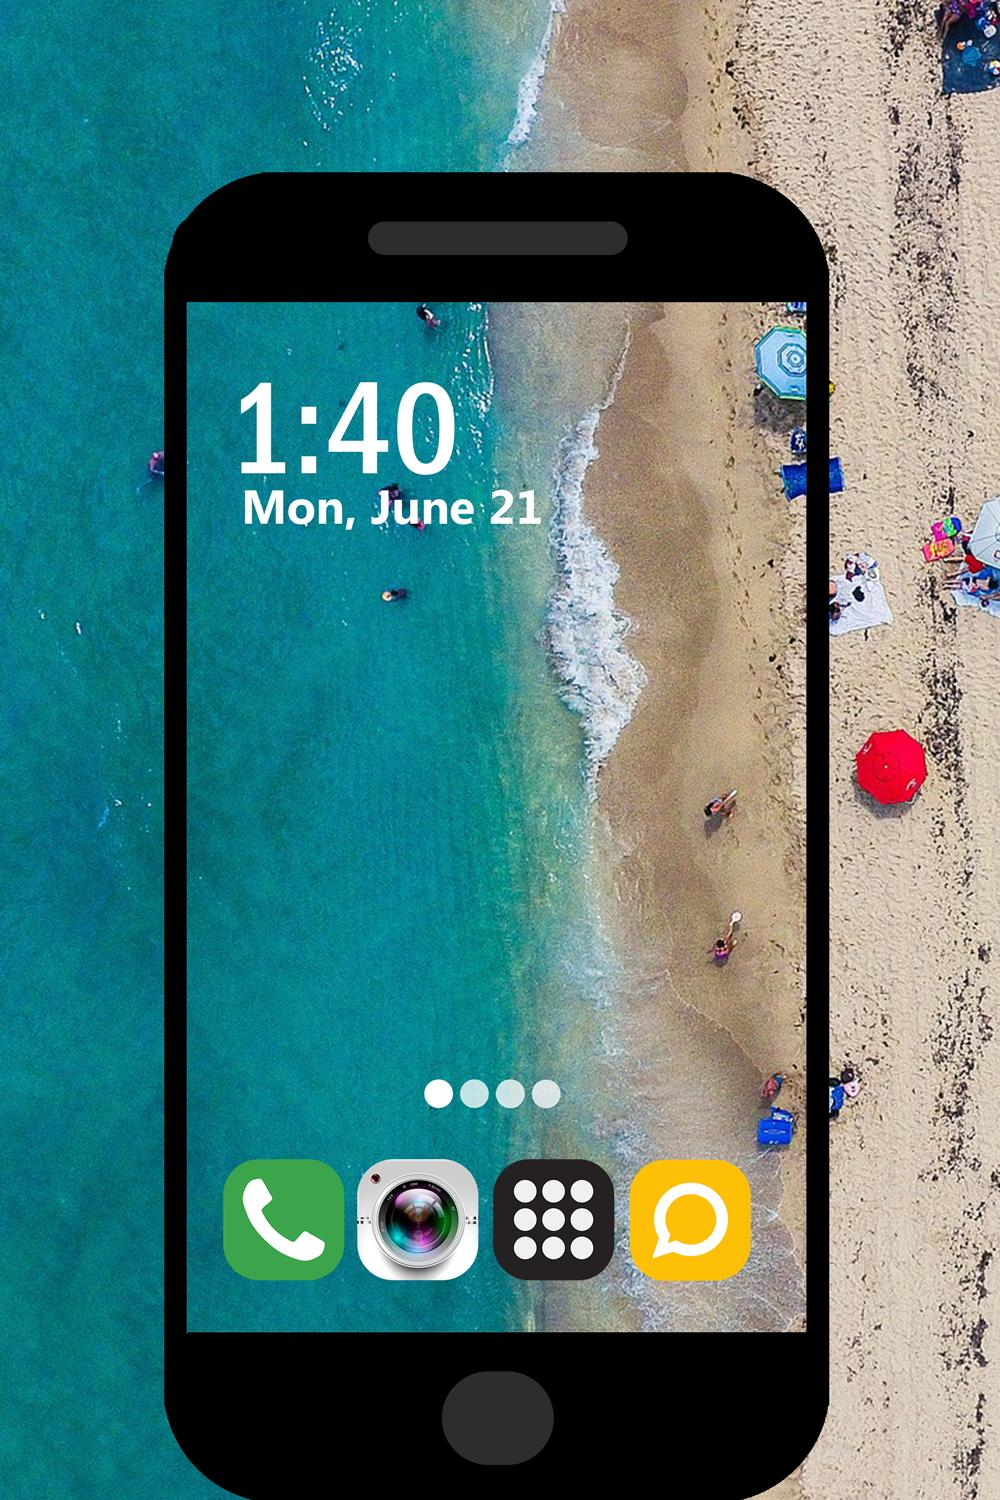 Hd Google Pixel 2 Pixel 2 Xl Live Wallpaper Free For